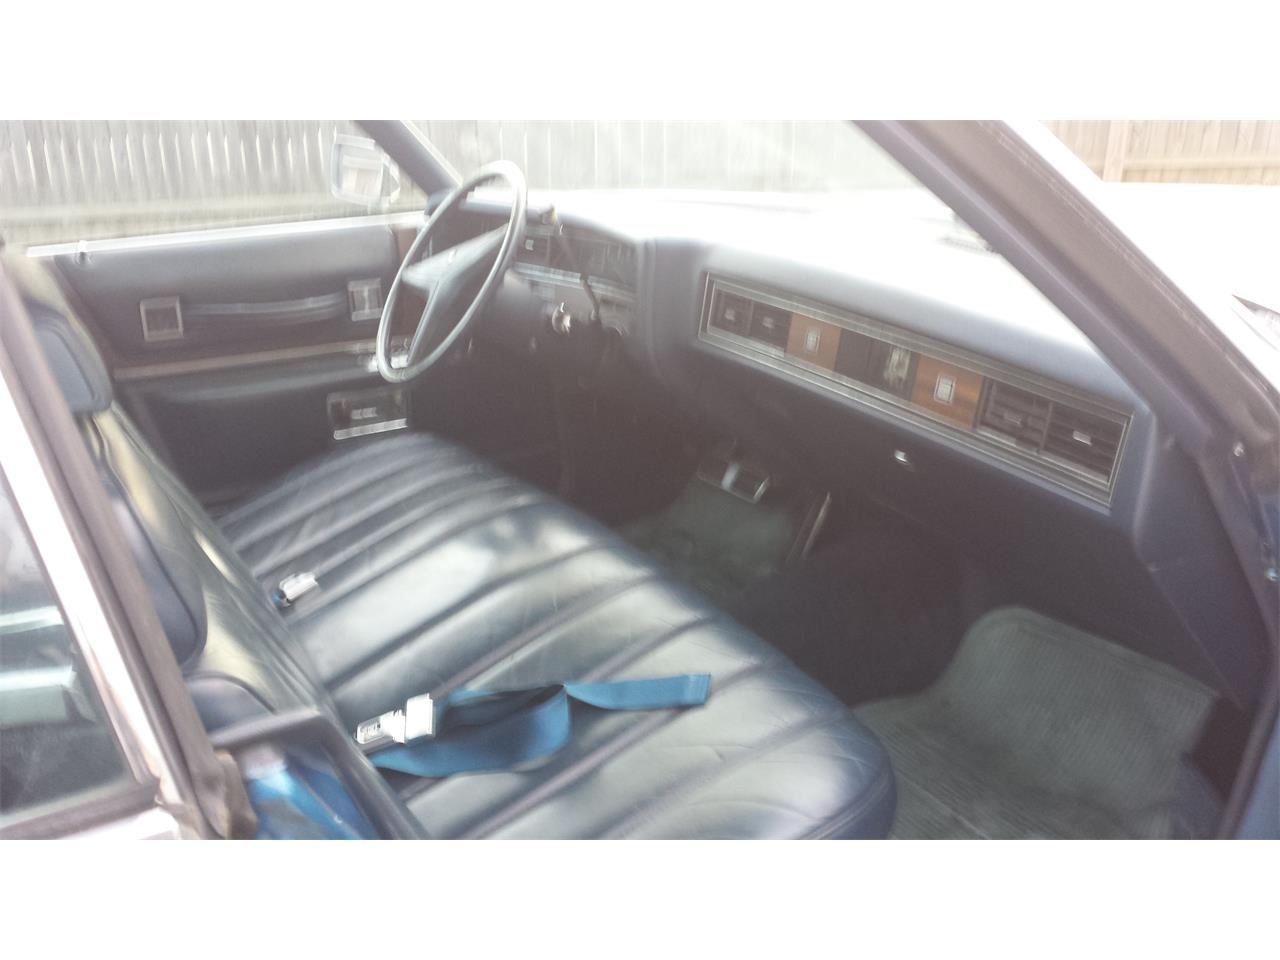 Large Picture of Classic '73 Cadillac DeVille located in Ohio - $5,500.00 Offered by a Private Seller - BYGT